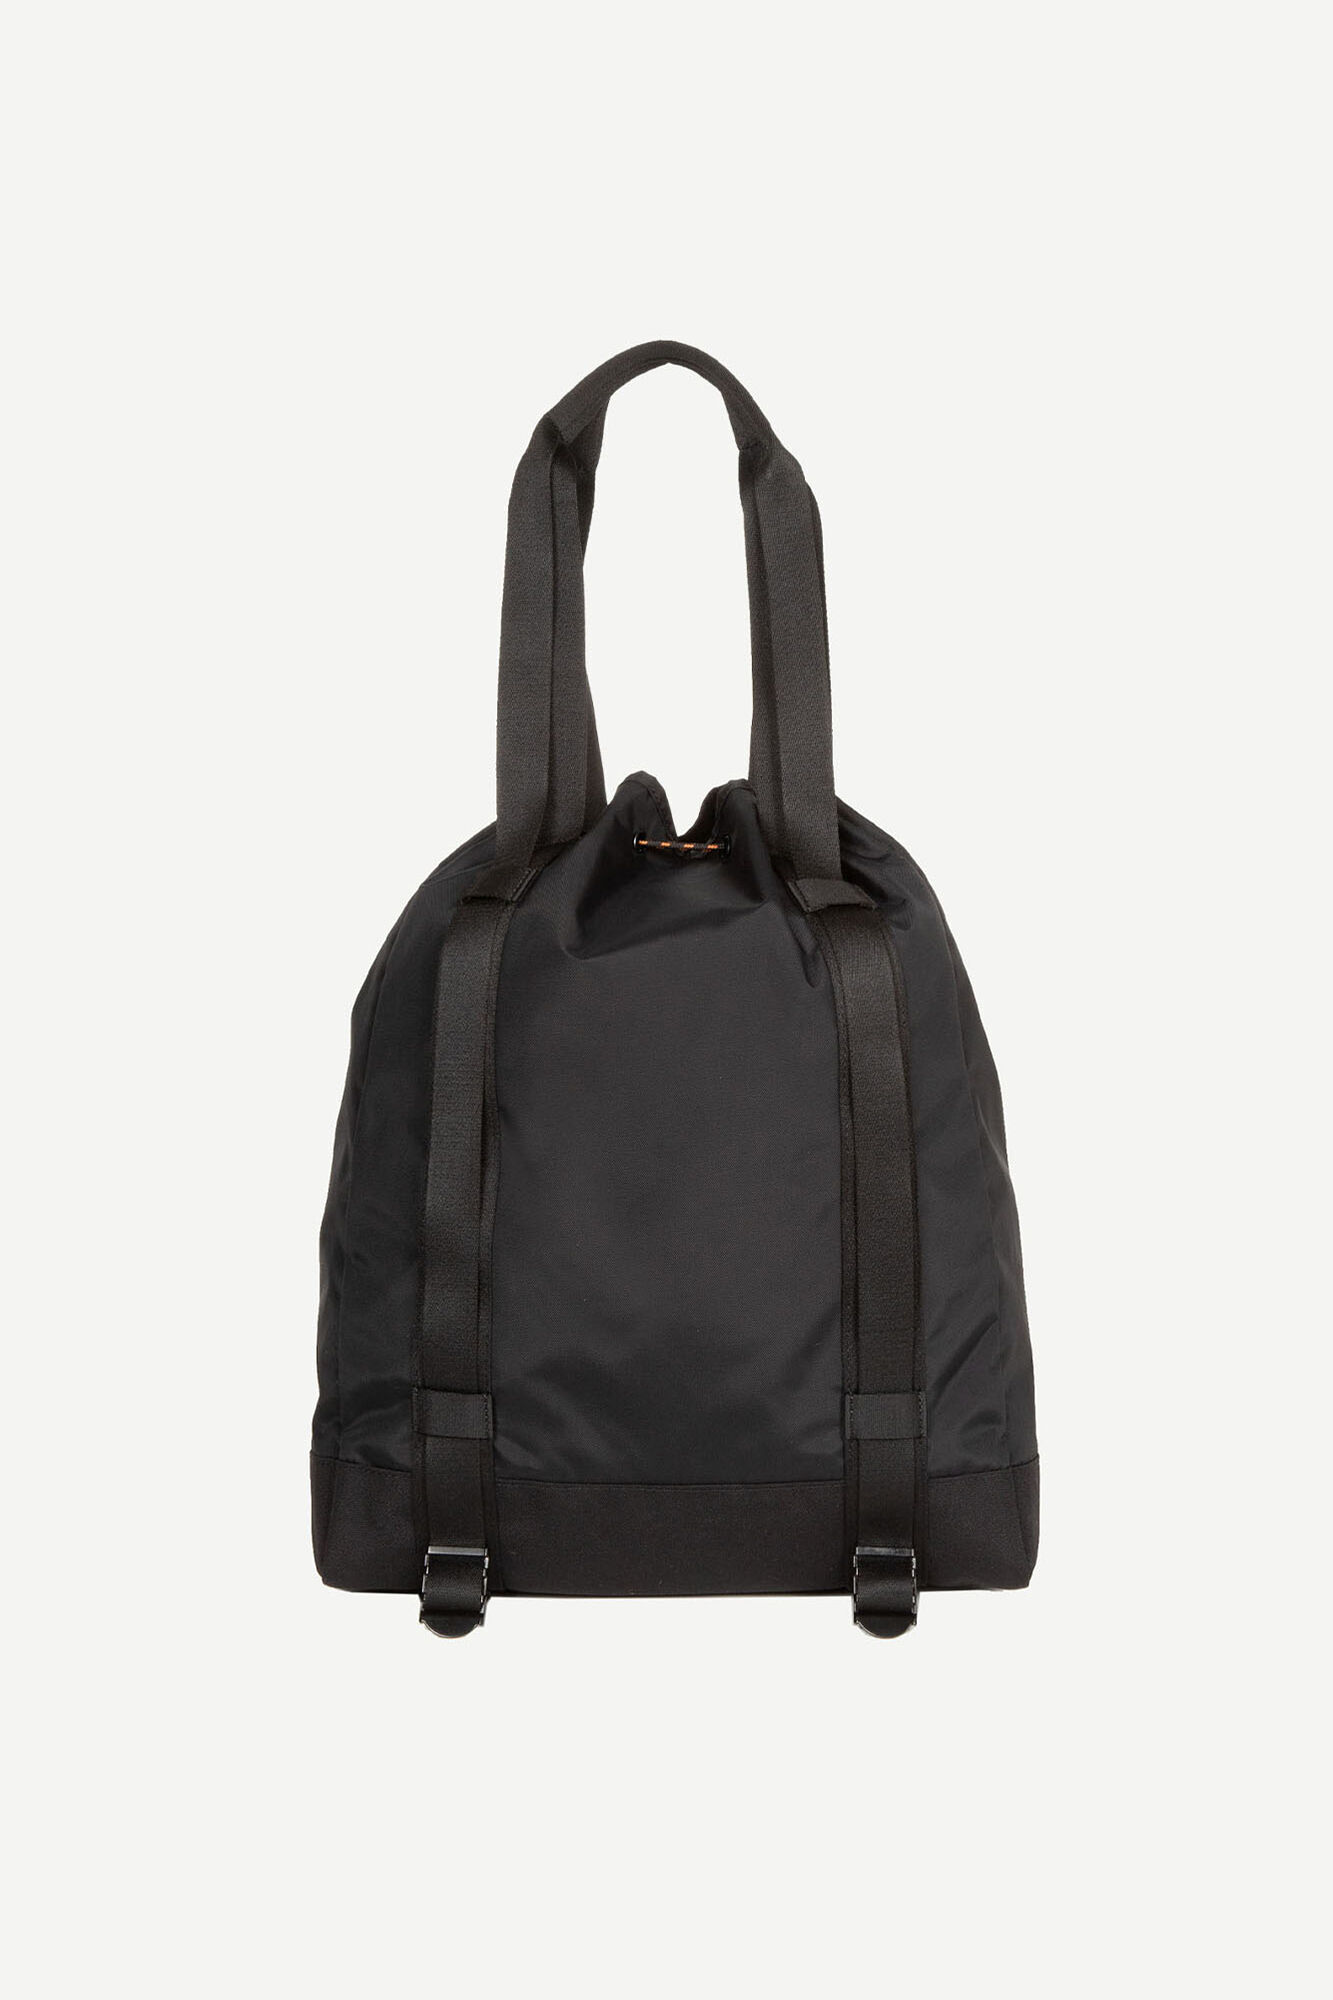 E Tote Bag 13052, BLACK